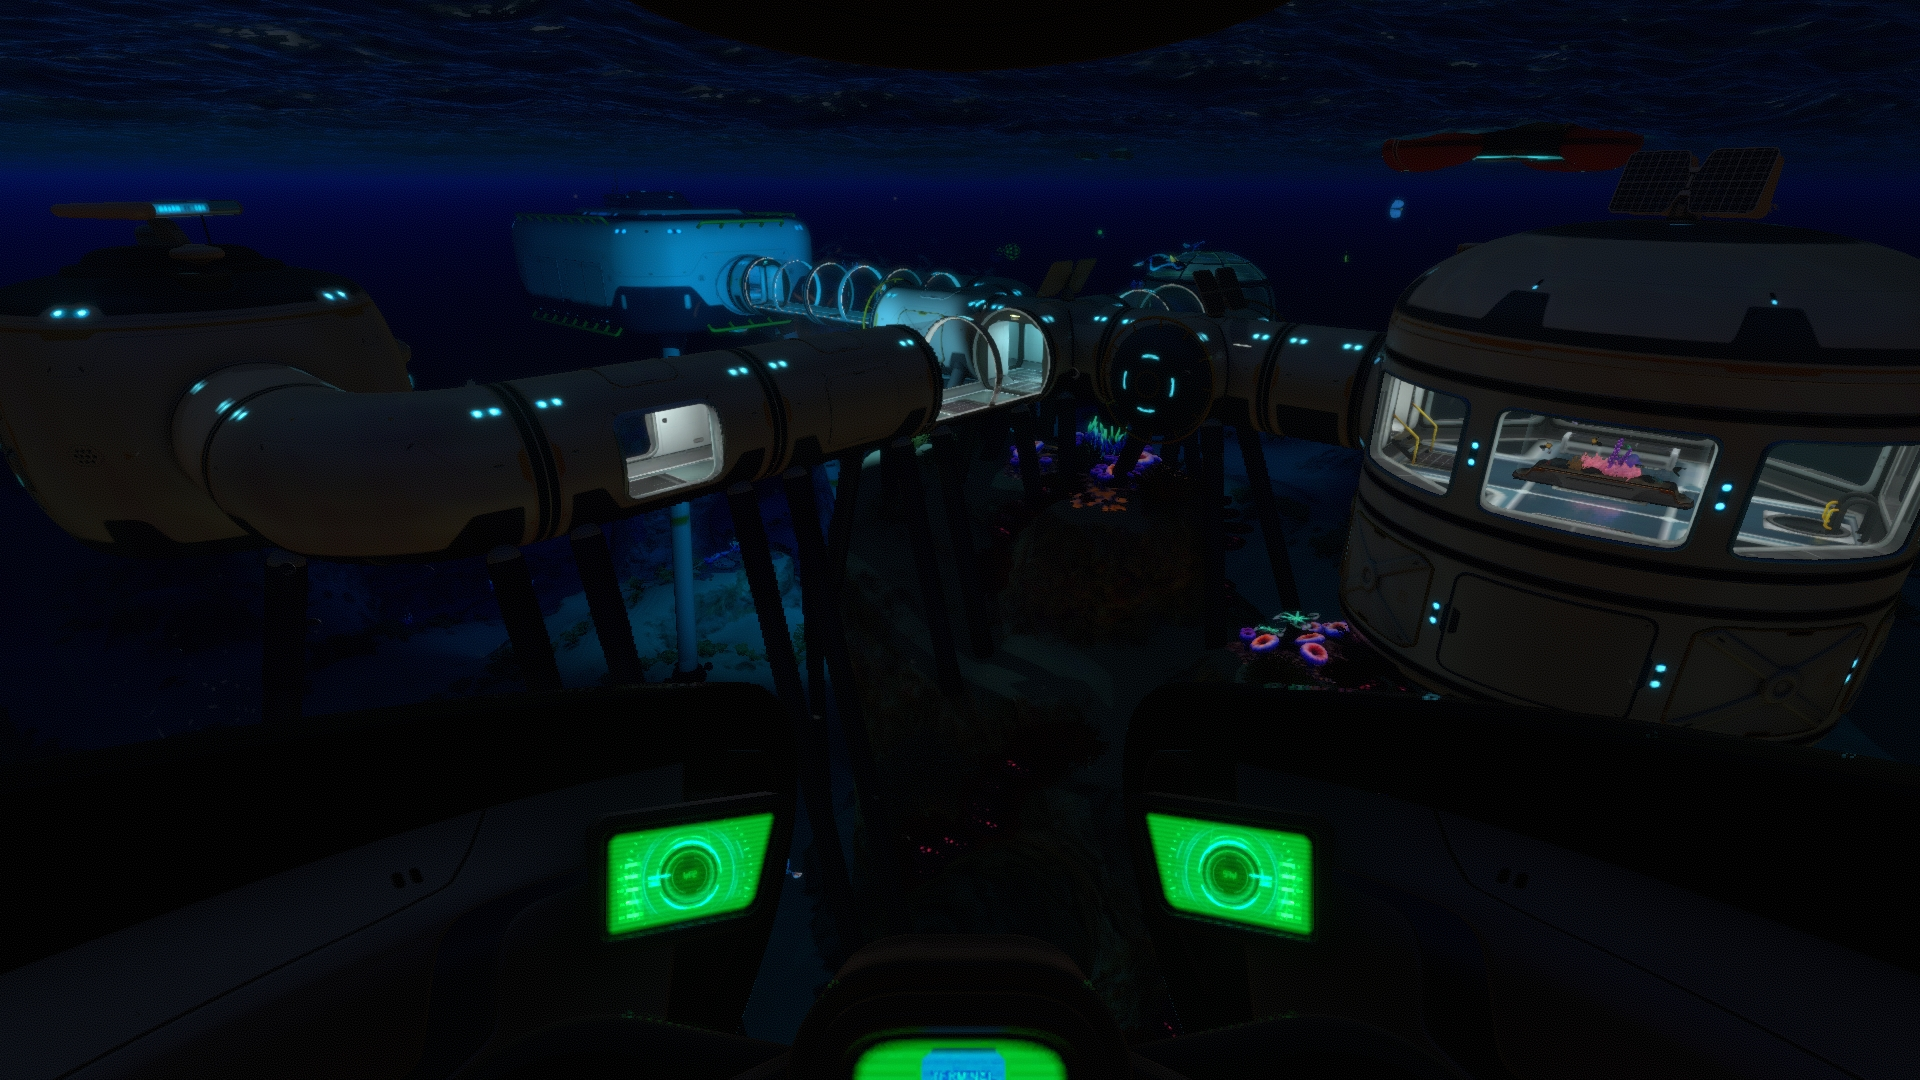 Subnautica Simhq Forums Now i have a whole other. simhq